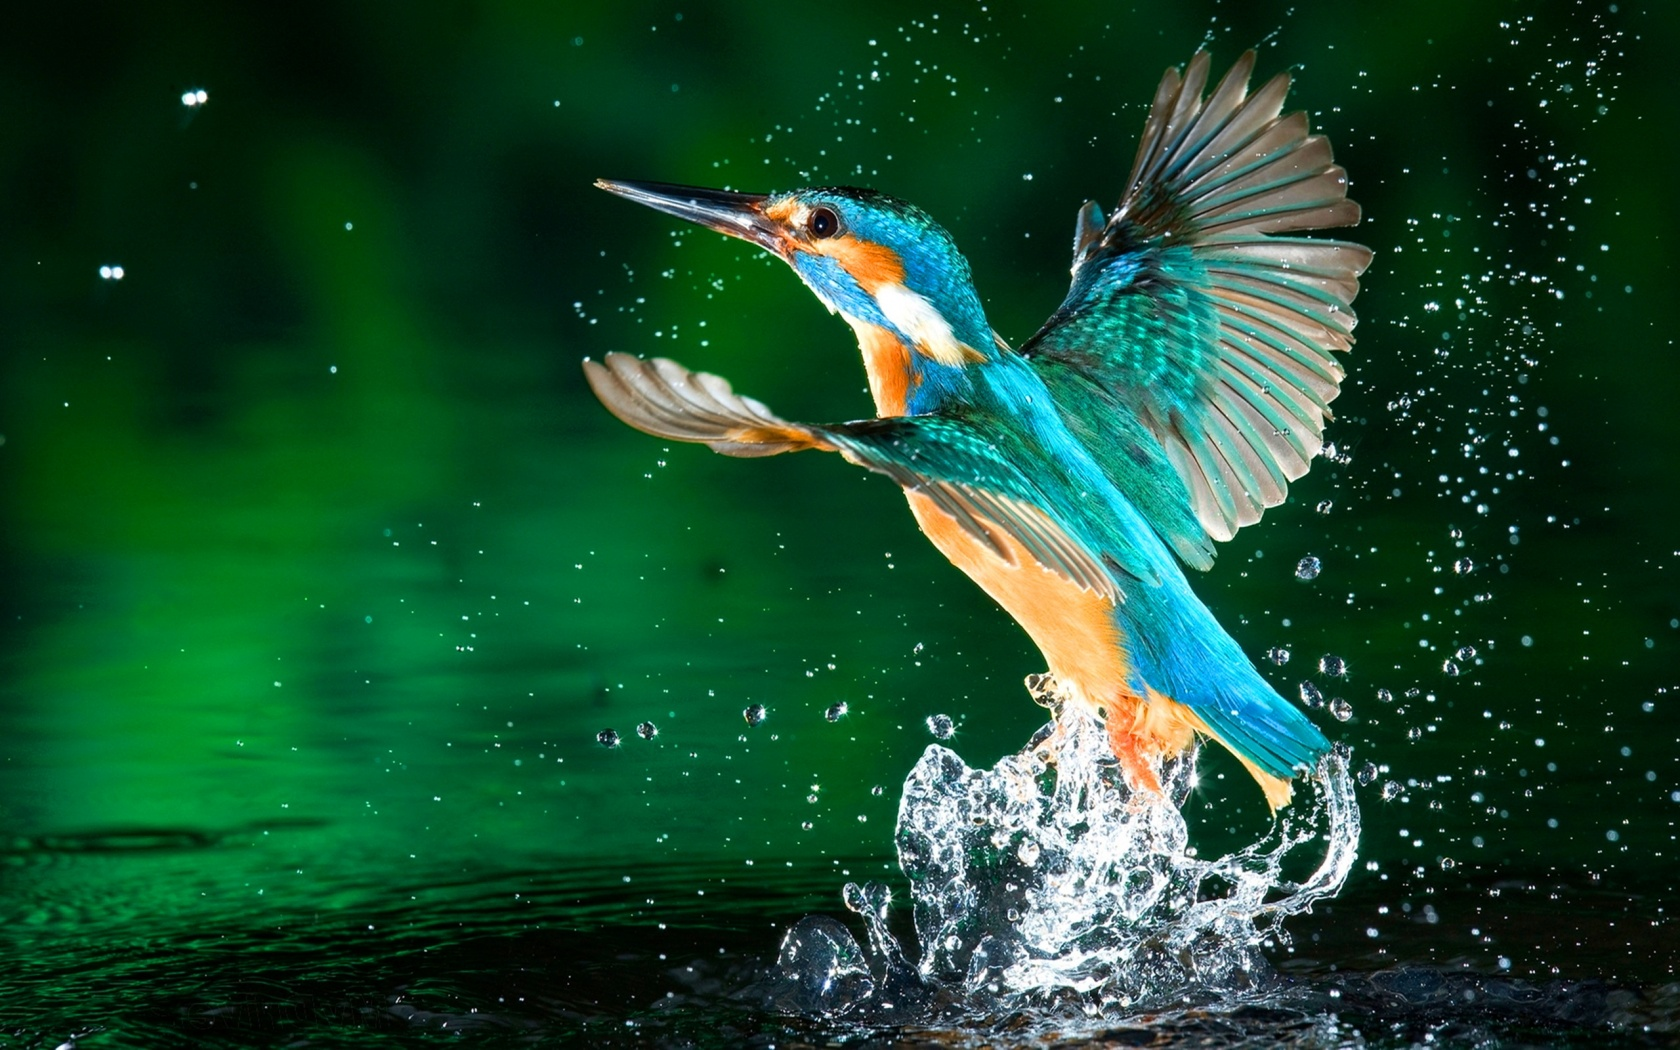 kingfisher wallpapers hd - photo #6